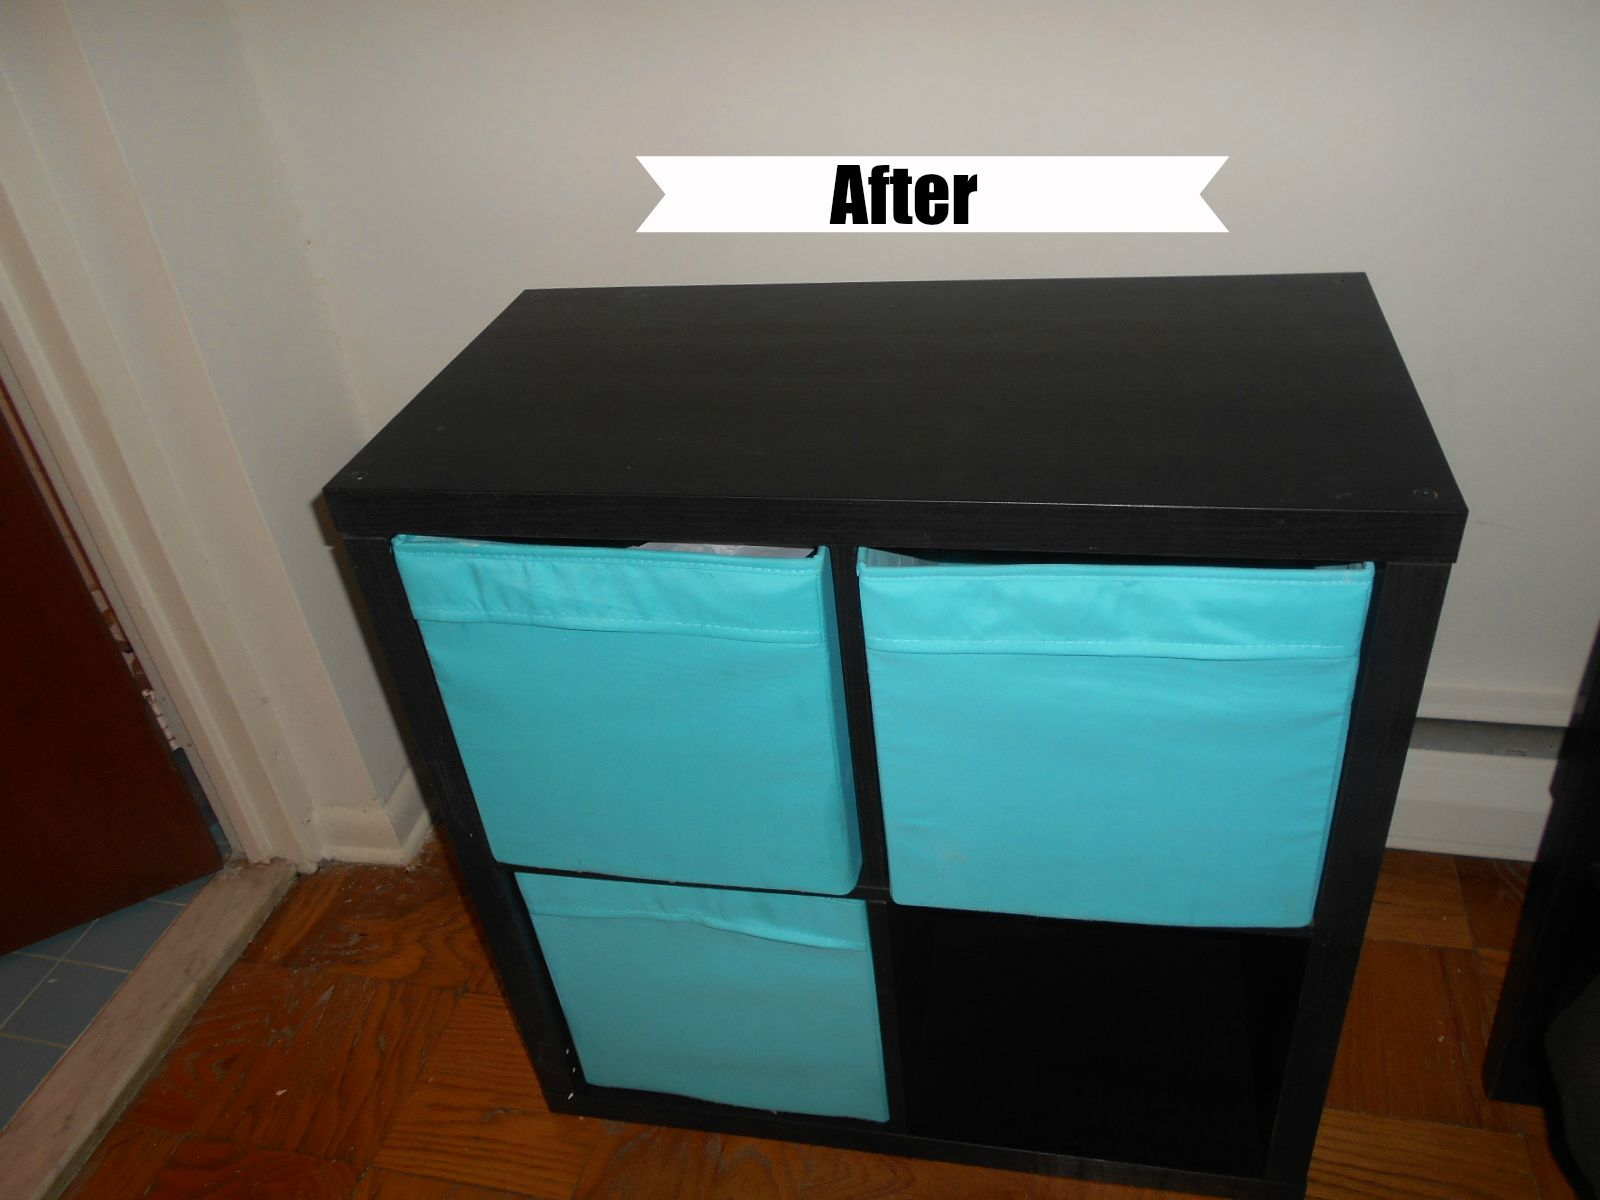 Single mom chronicles diy blog series ikea boxes and for Ikea box shelf unit